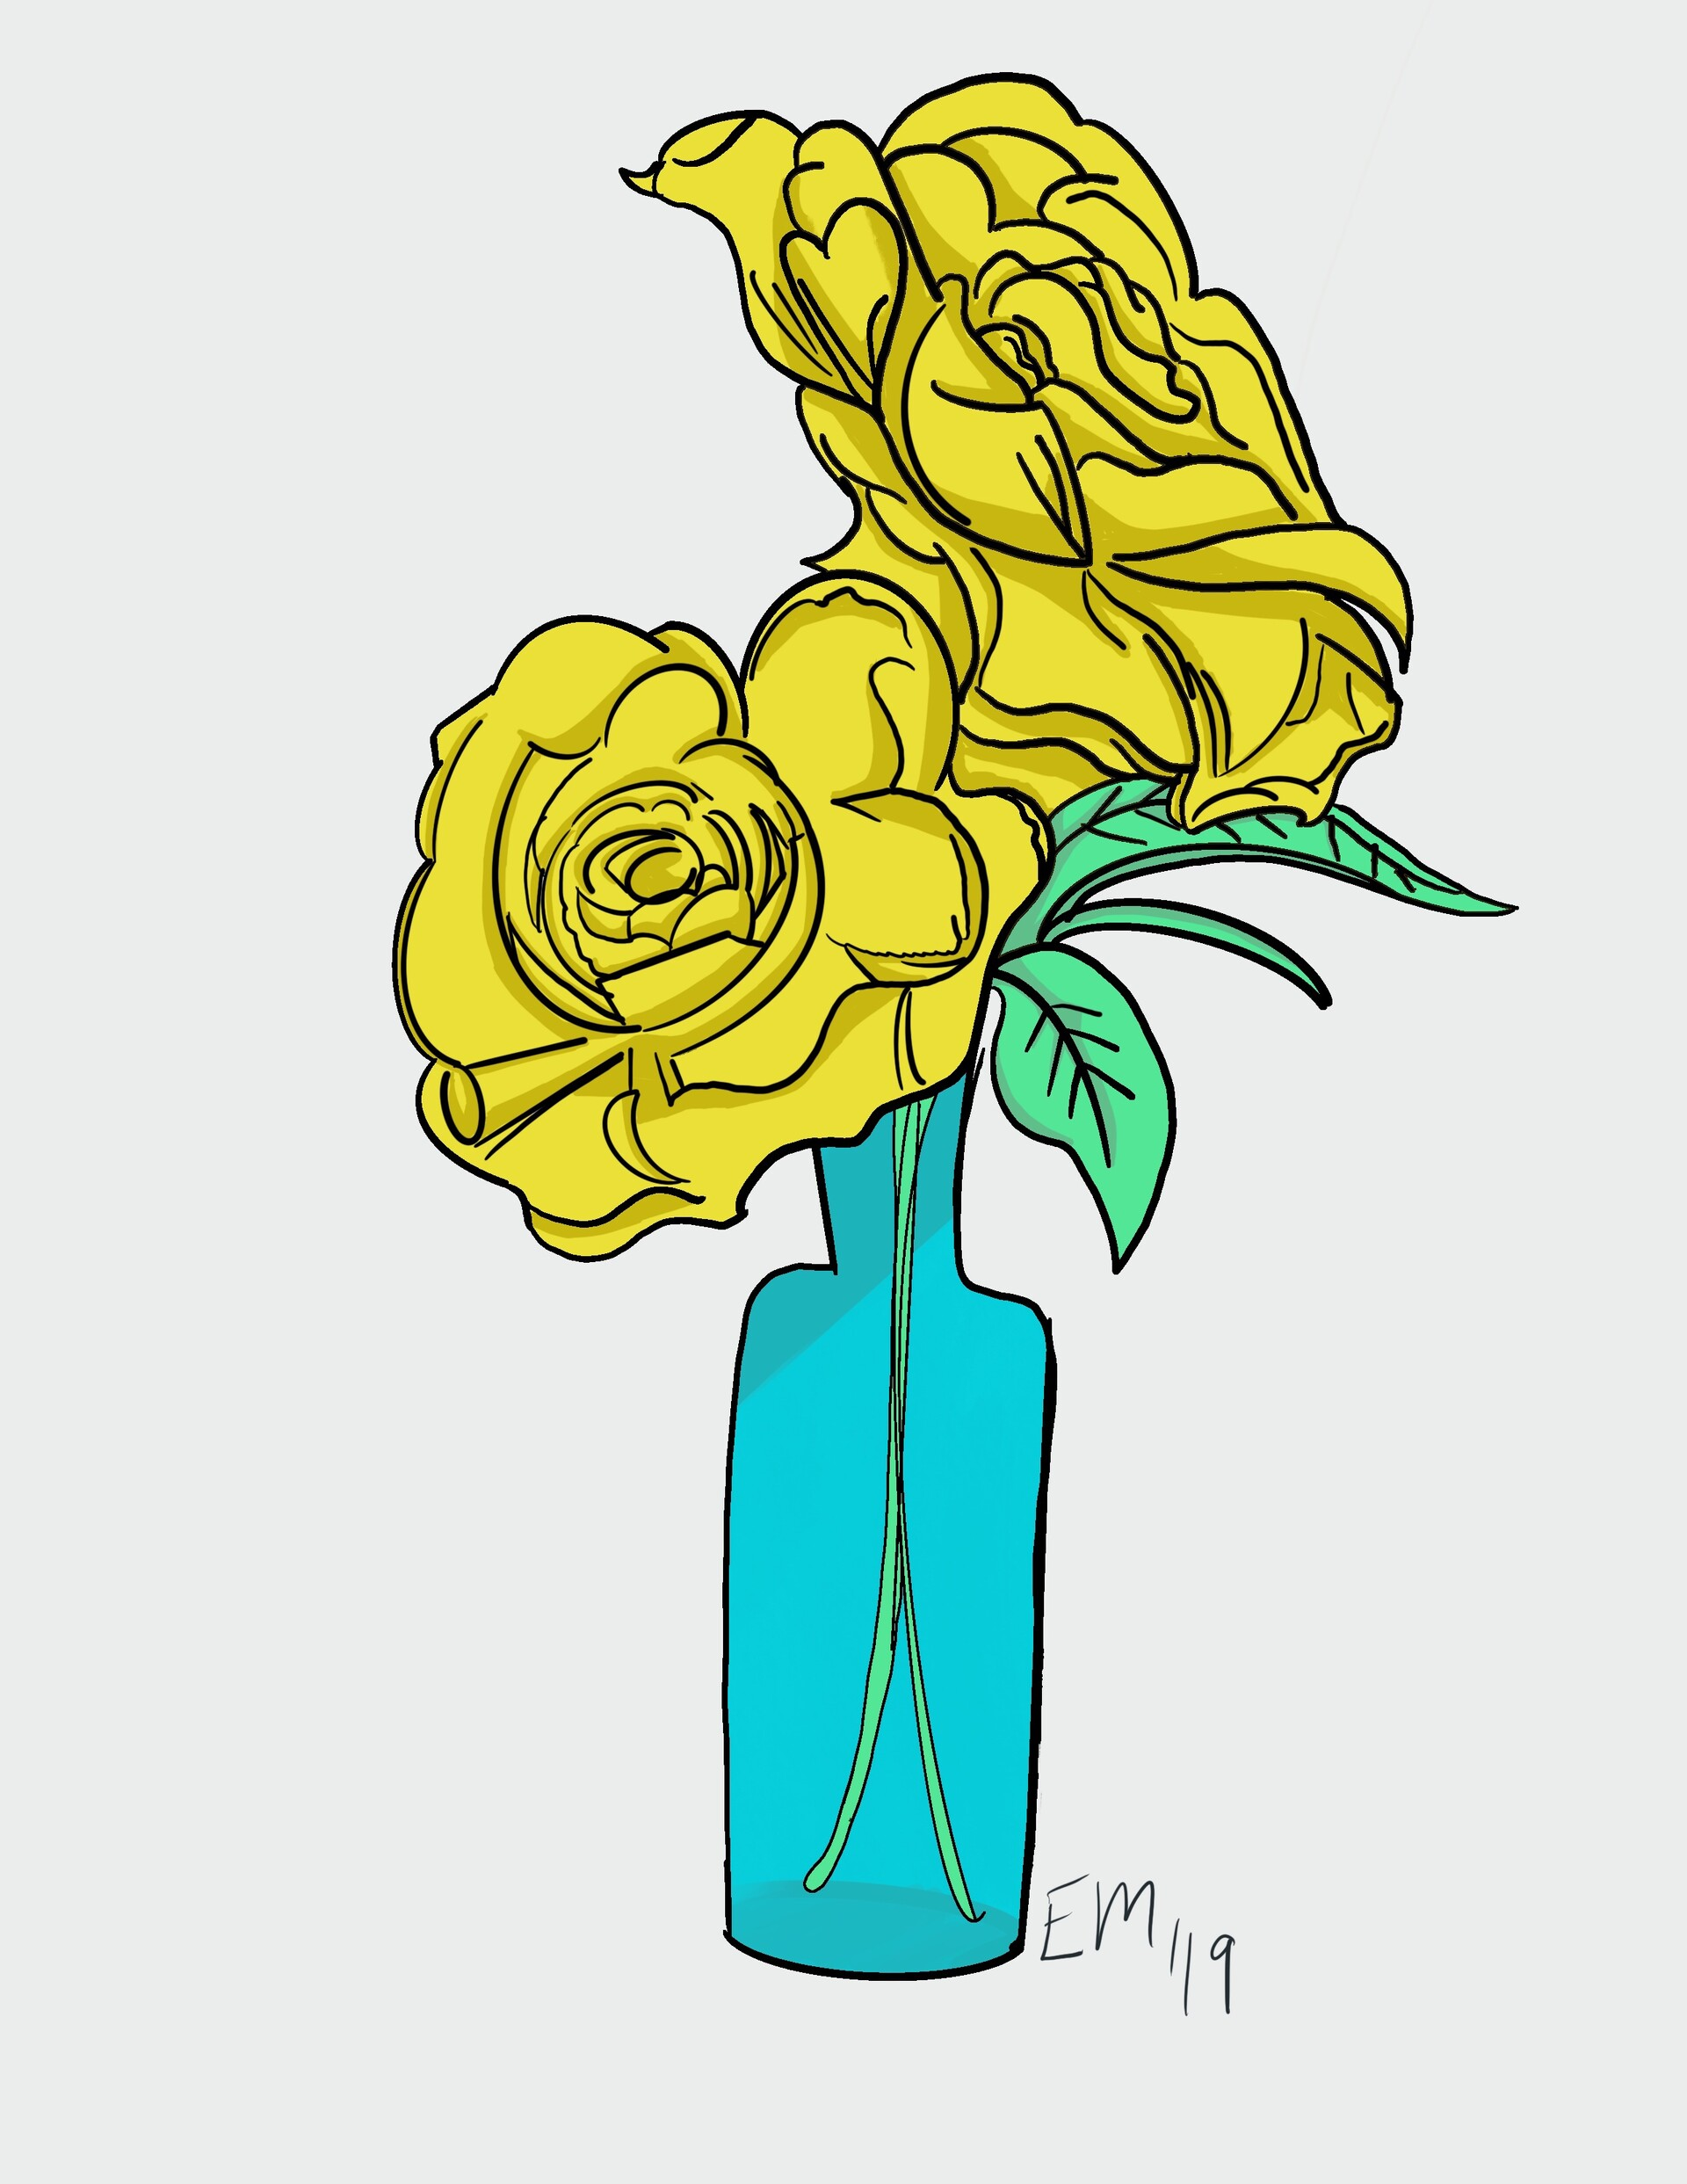 Yellow rose friendship clipart clip art royalty free ArtStation - Friendship Flowers, Ezzy Motaghedi clip art royalty free